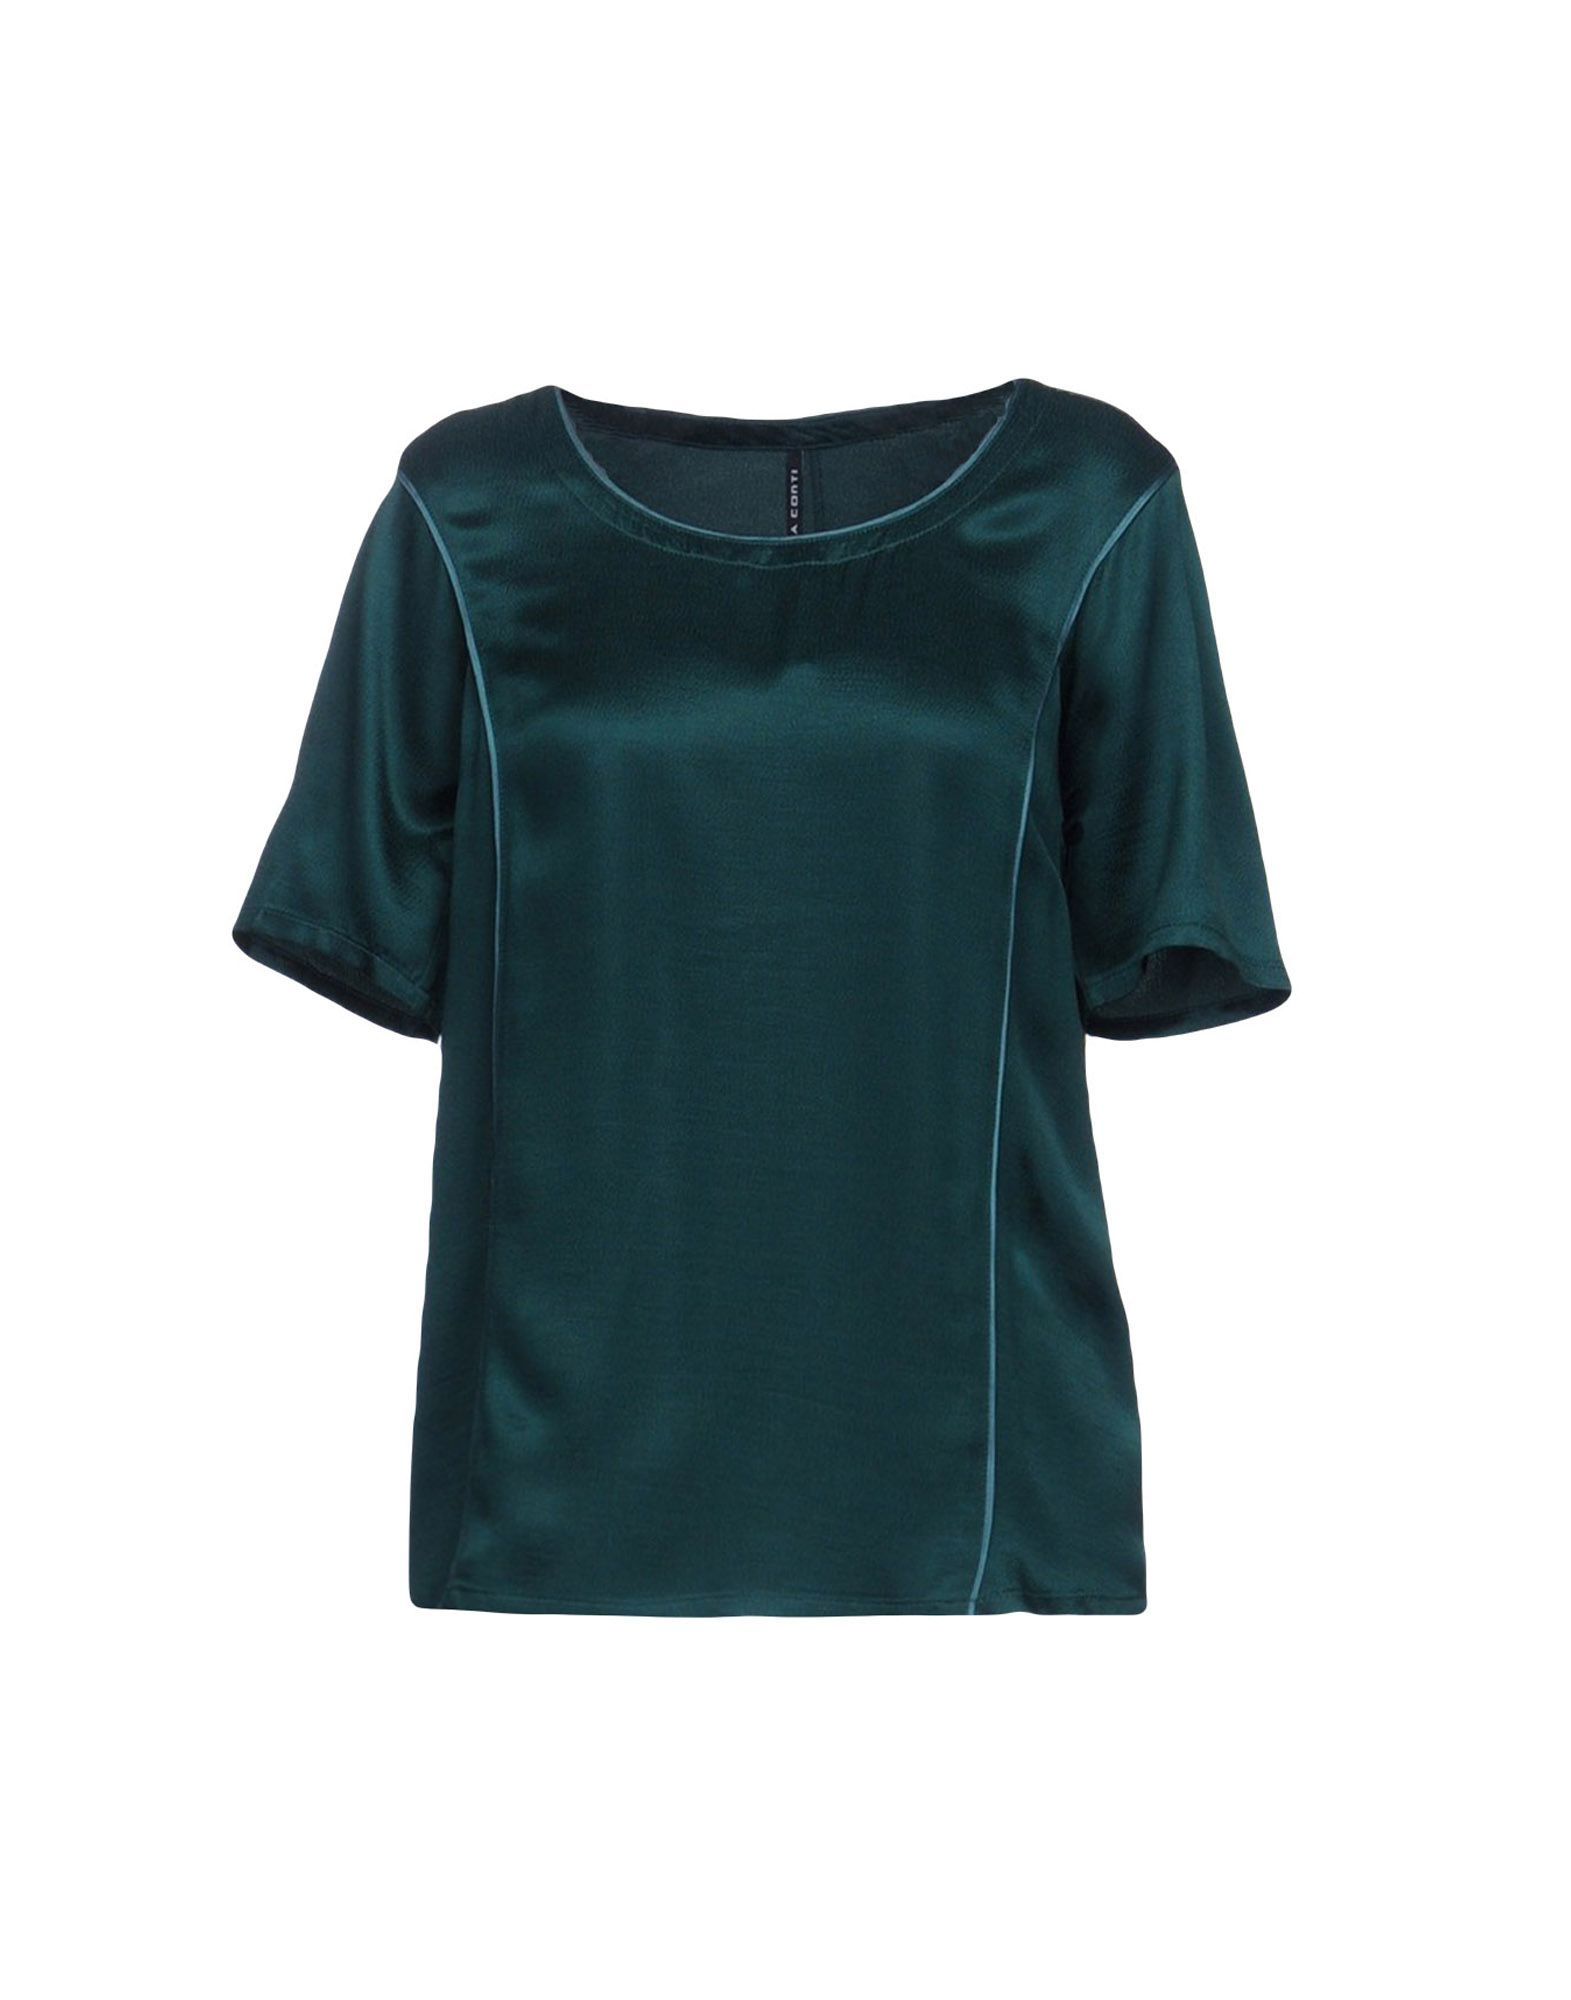 LIVIANA CONTI Blouse in Dark Green